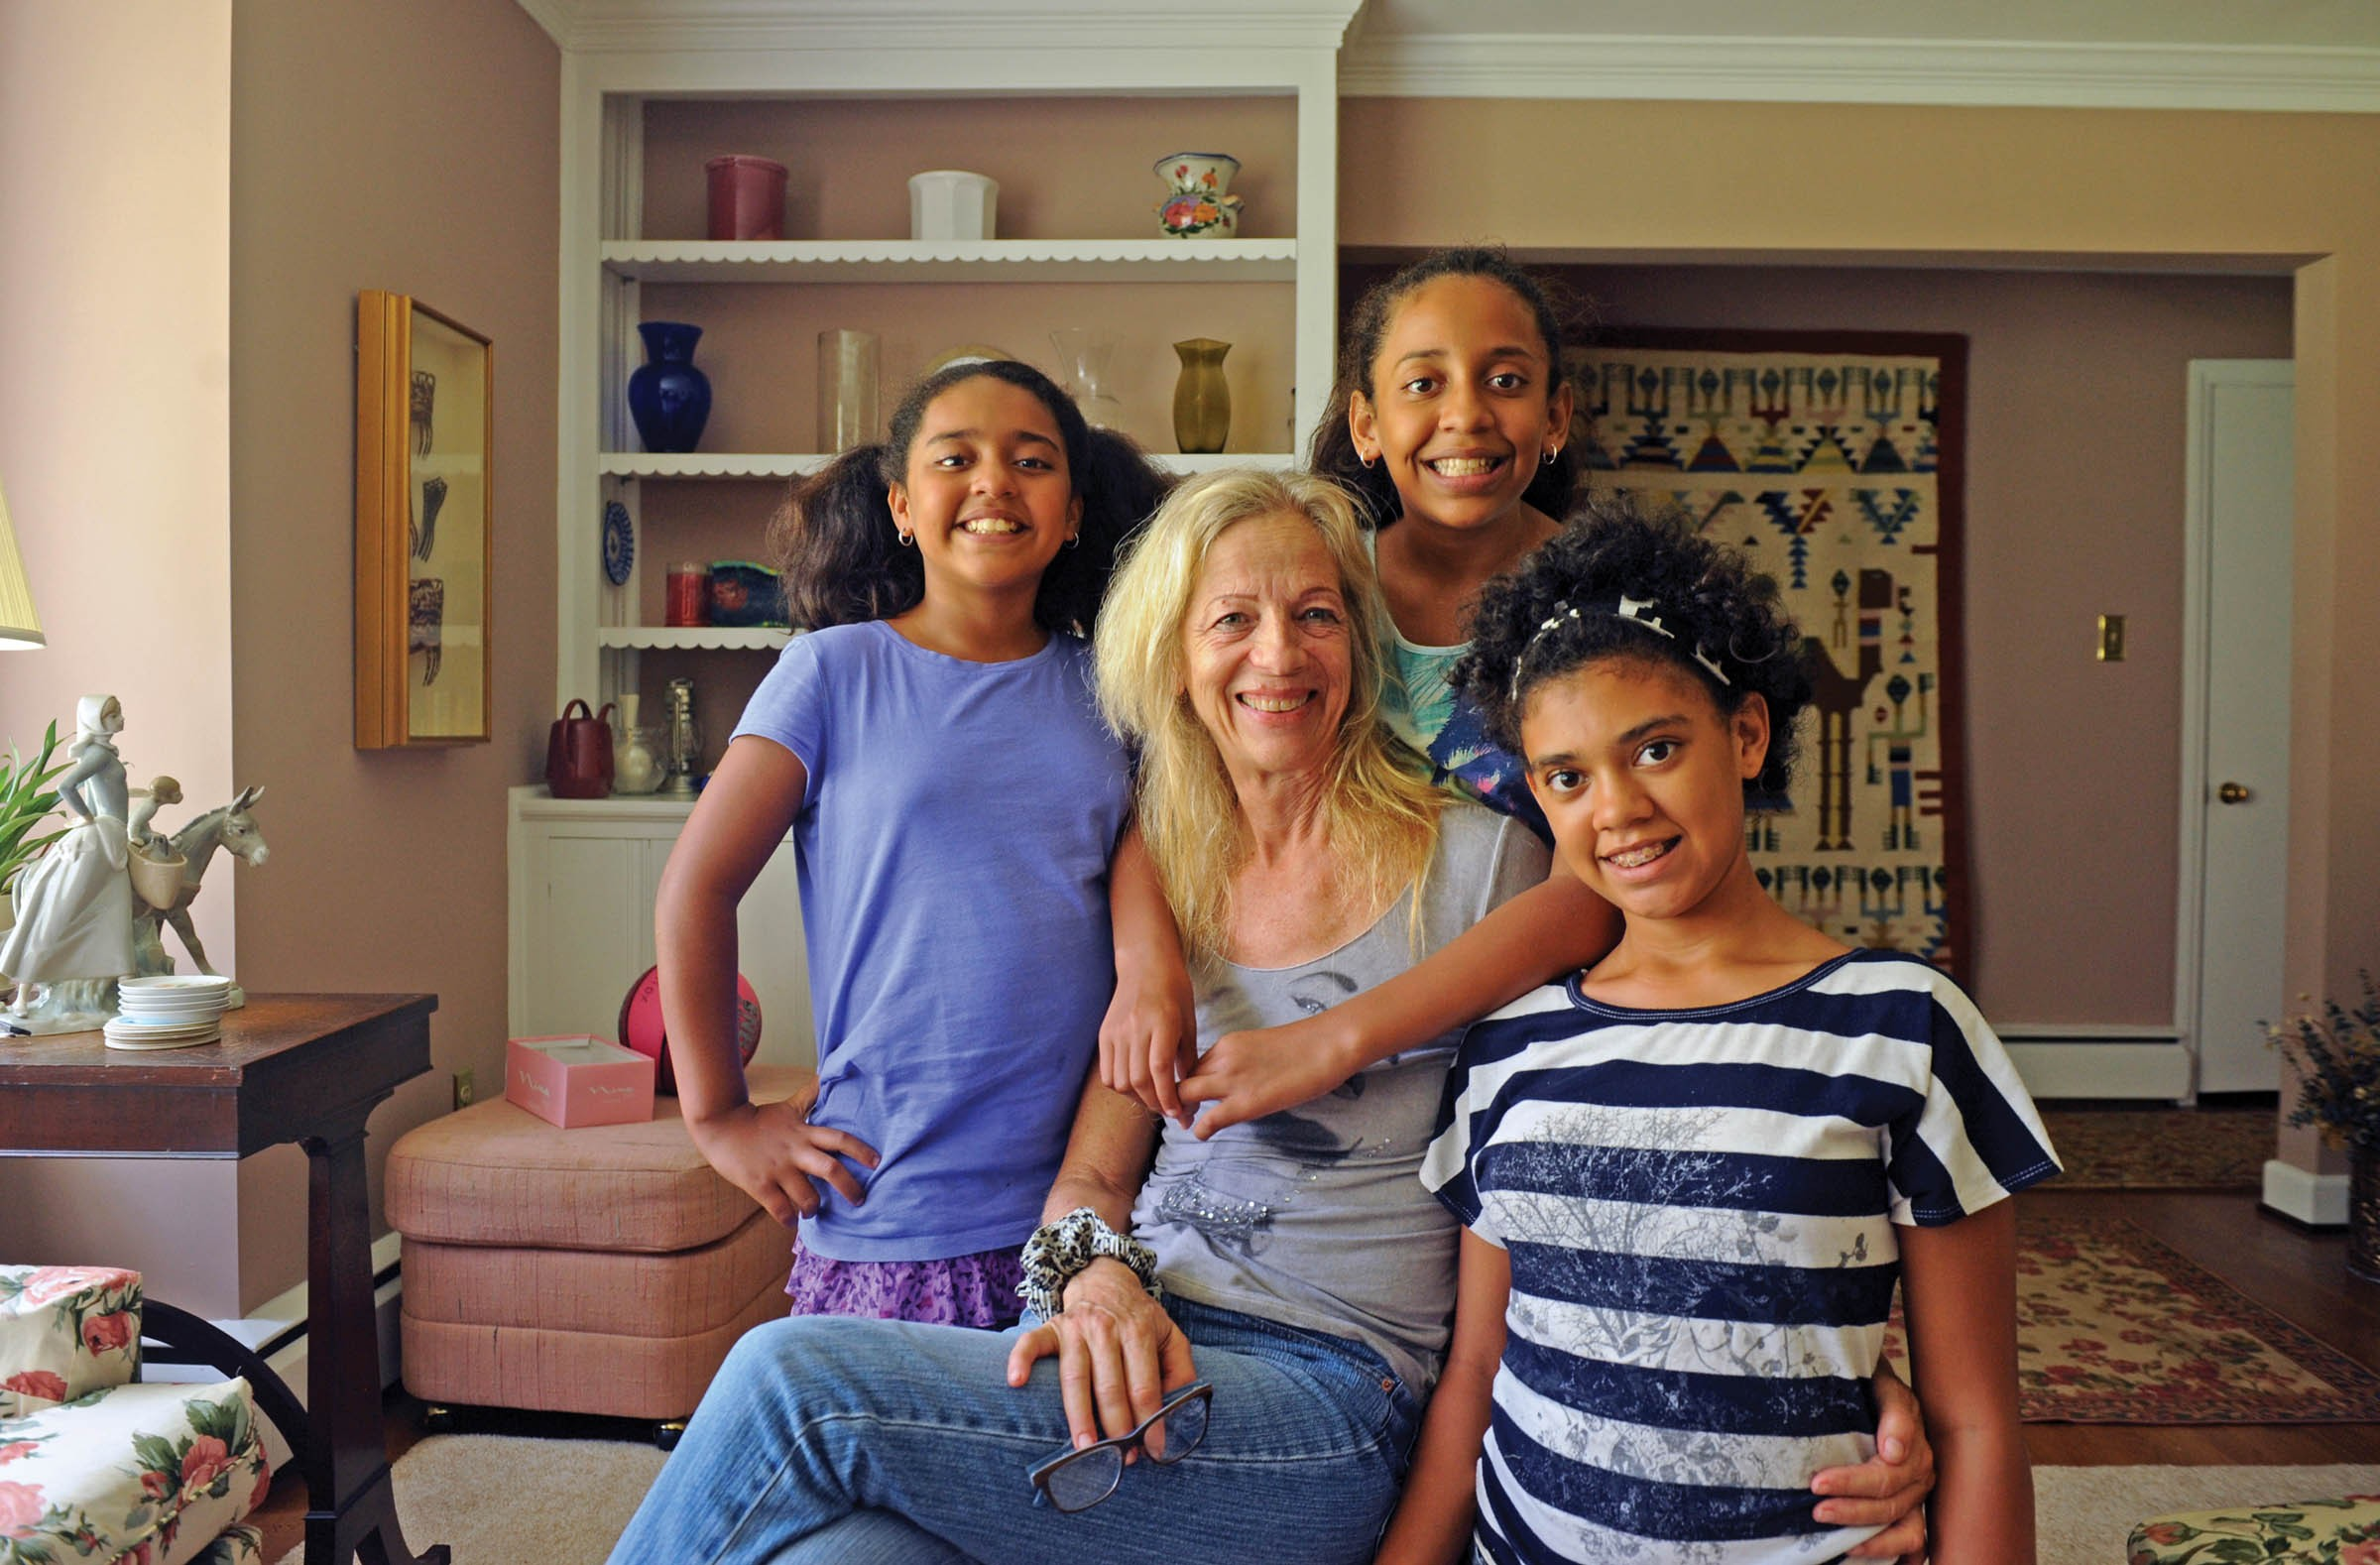 A decade after Ceil Gruessing spotted the three sisters Angie, Jazmin and Roxana, from left, in a cardboard box in Honduras, the new family has moved to Henrico County where the girls start school this week. - SCOTT ELMQUIST